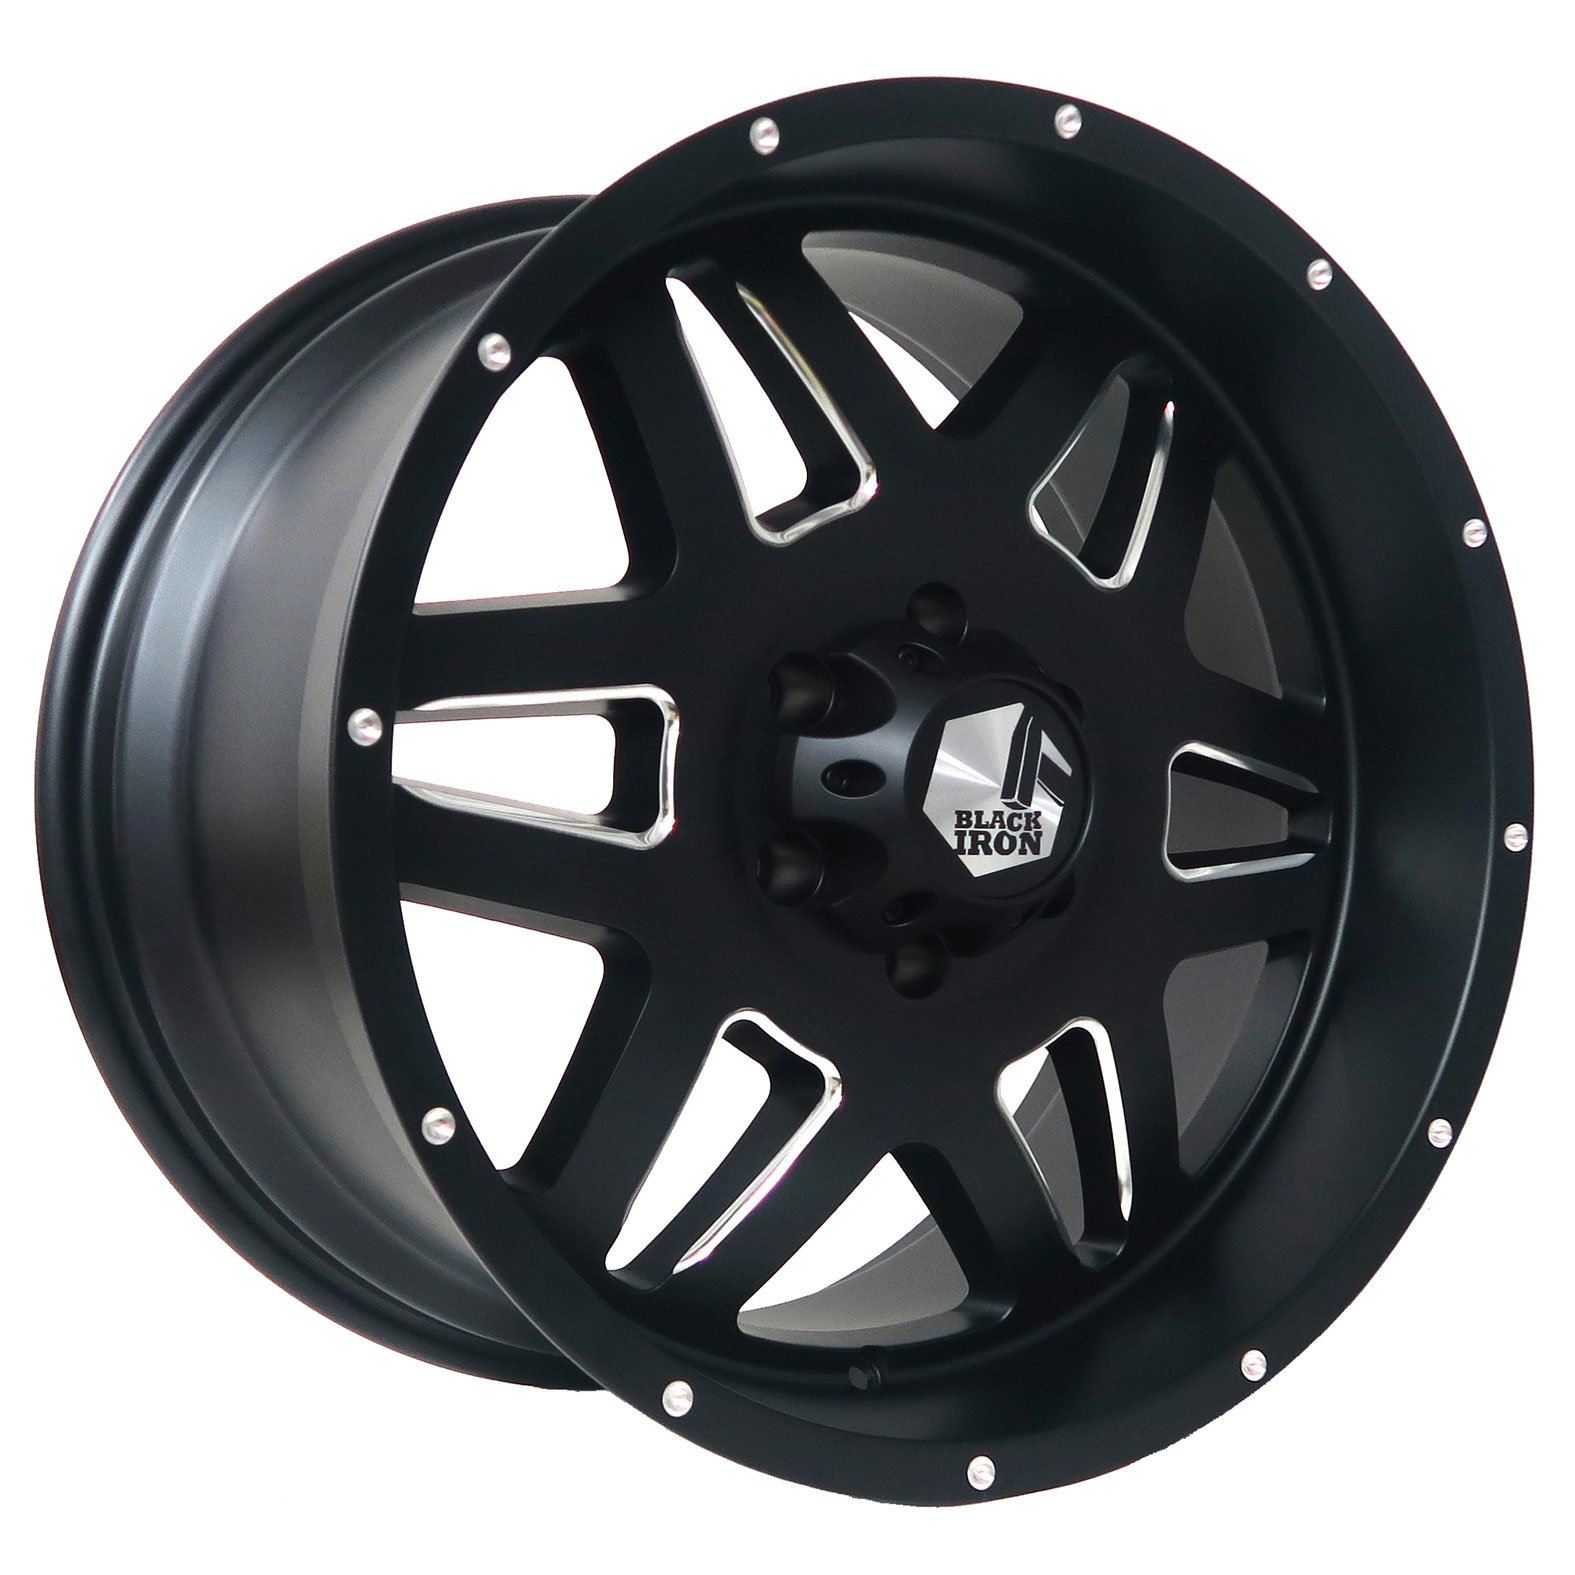 Black Iron Brawler Black Satin Milled Wheel